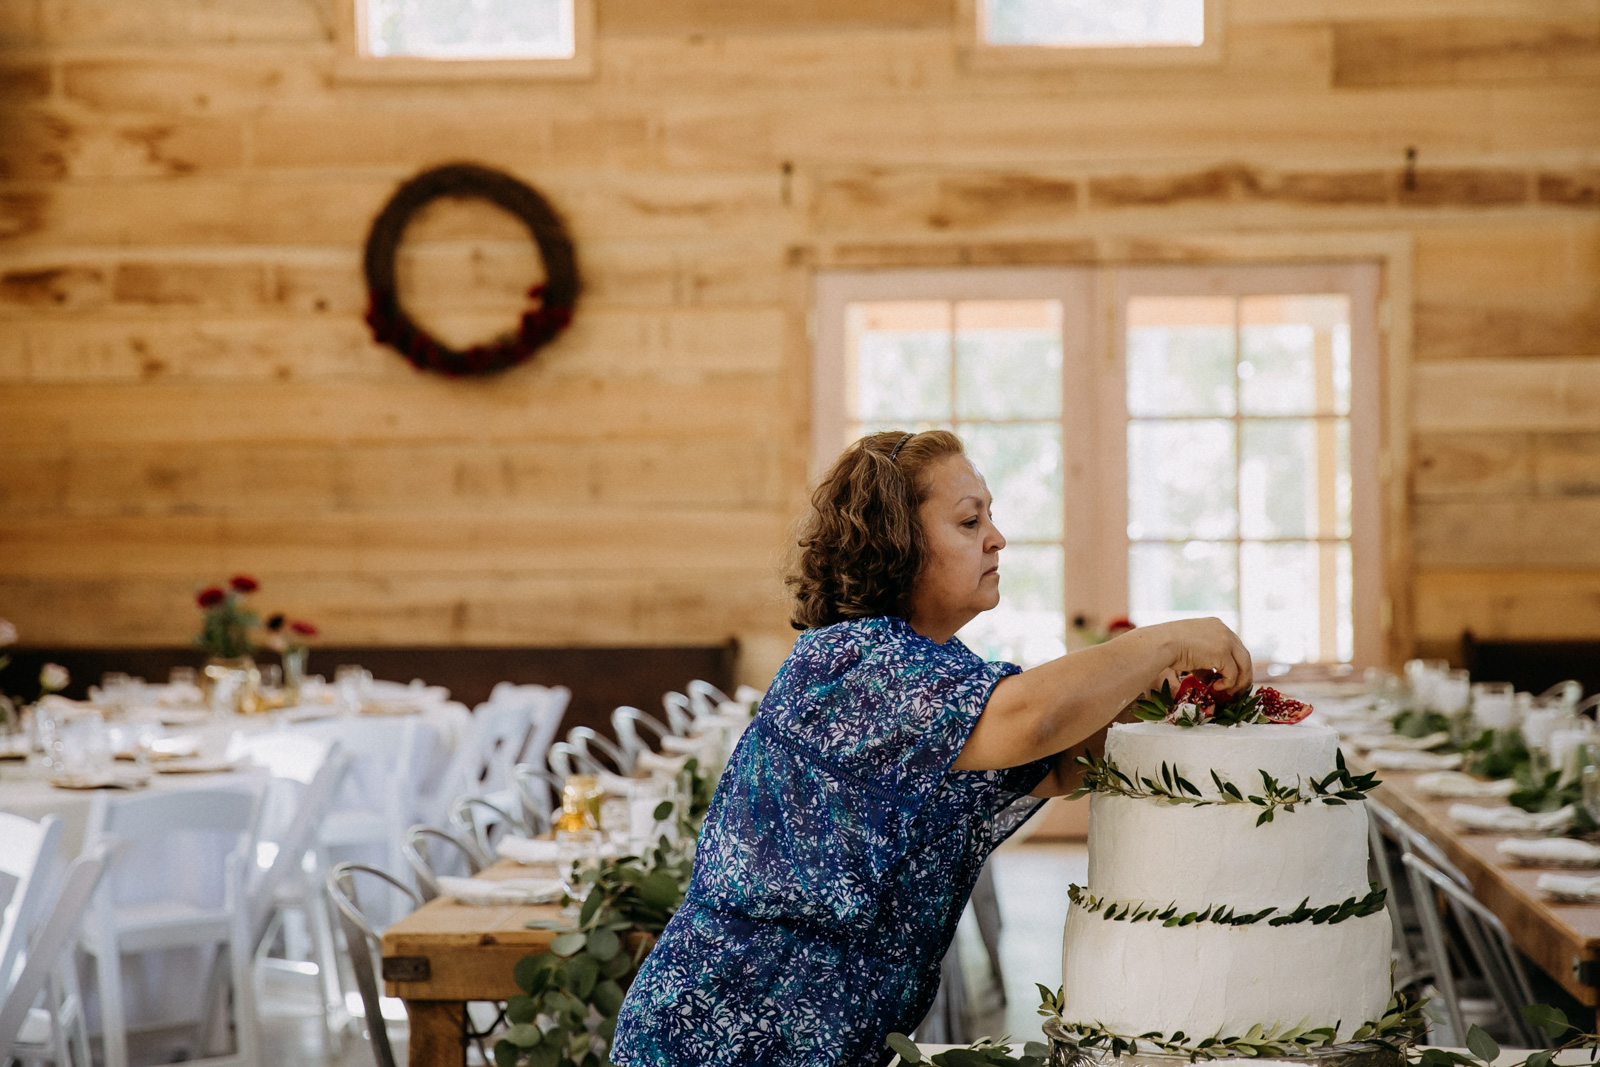 Mother-of-the-groom decorating the cake with olive leaves